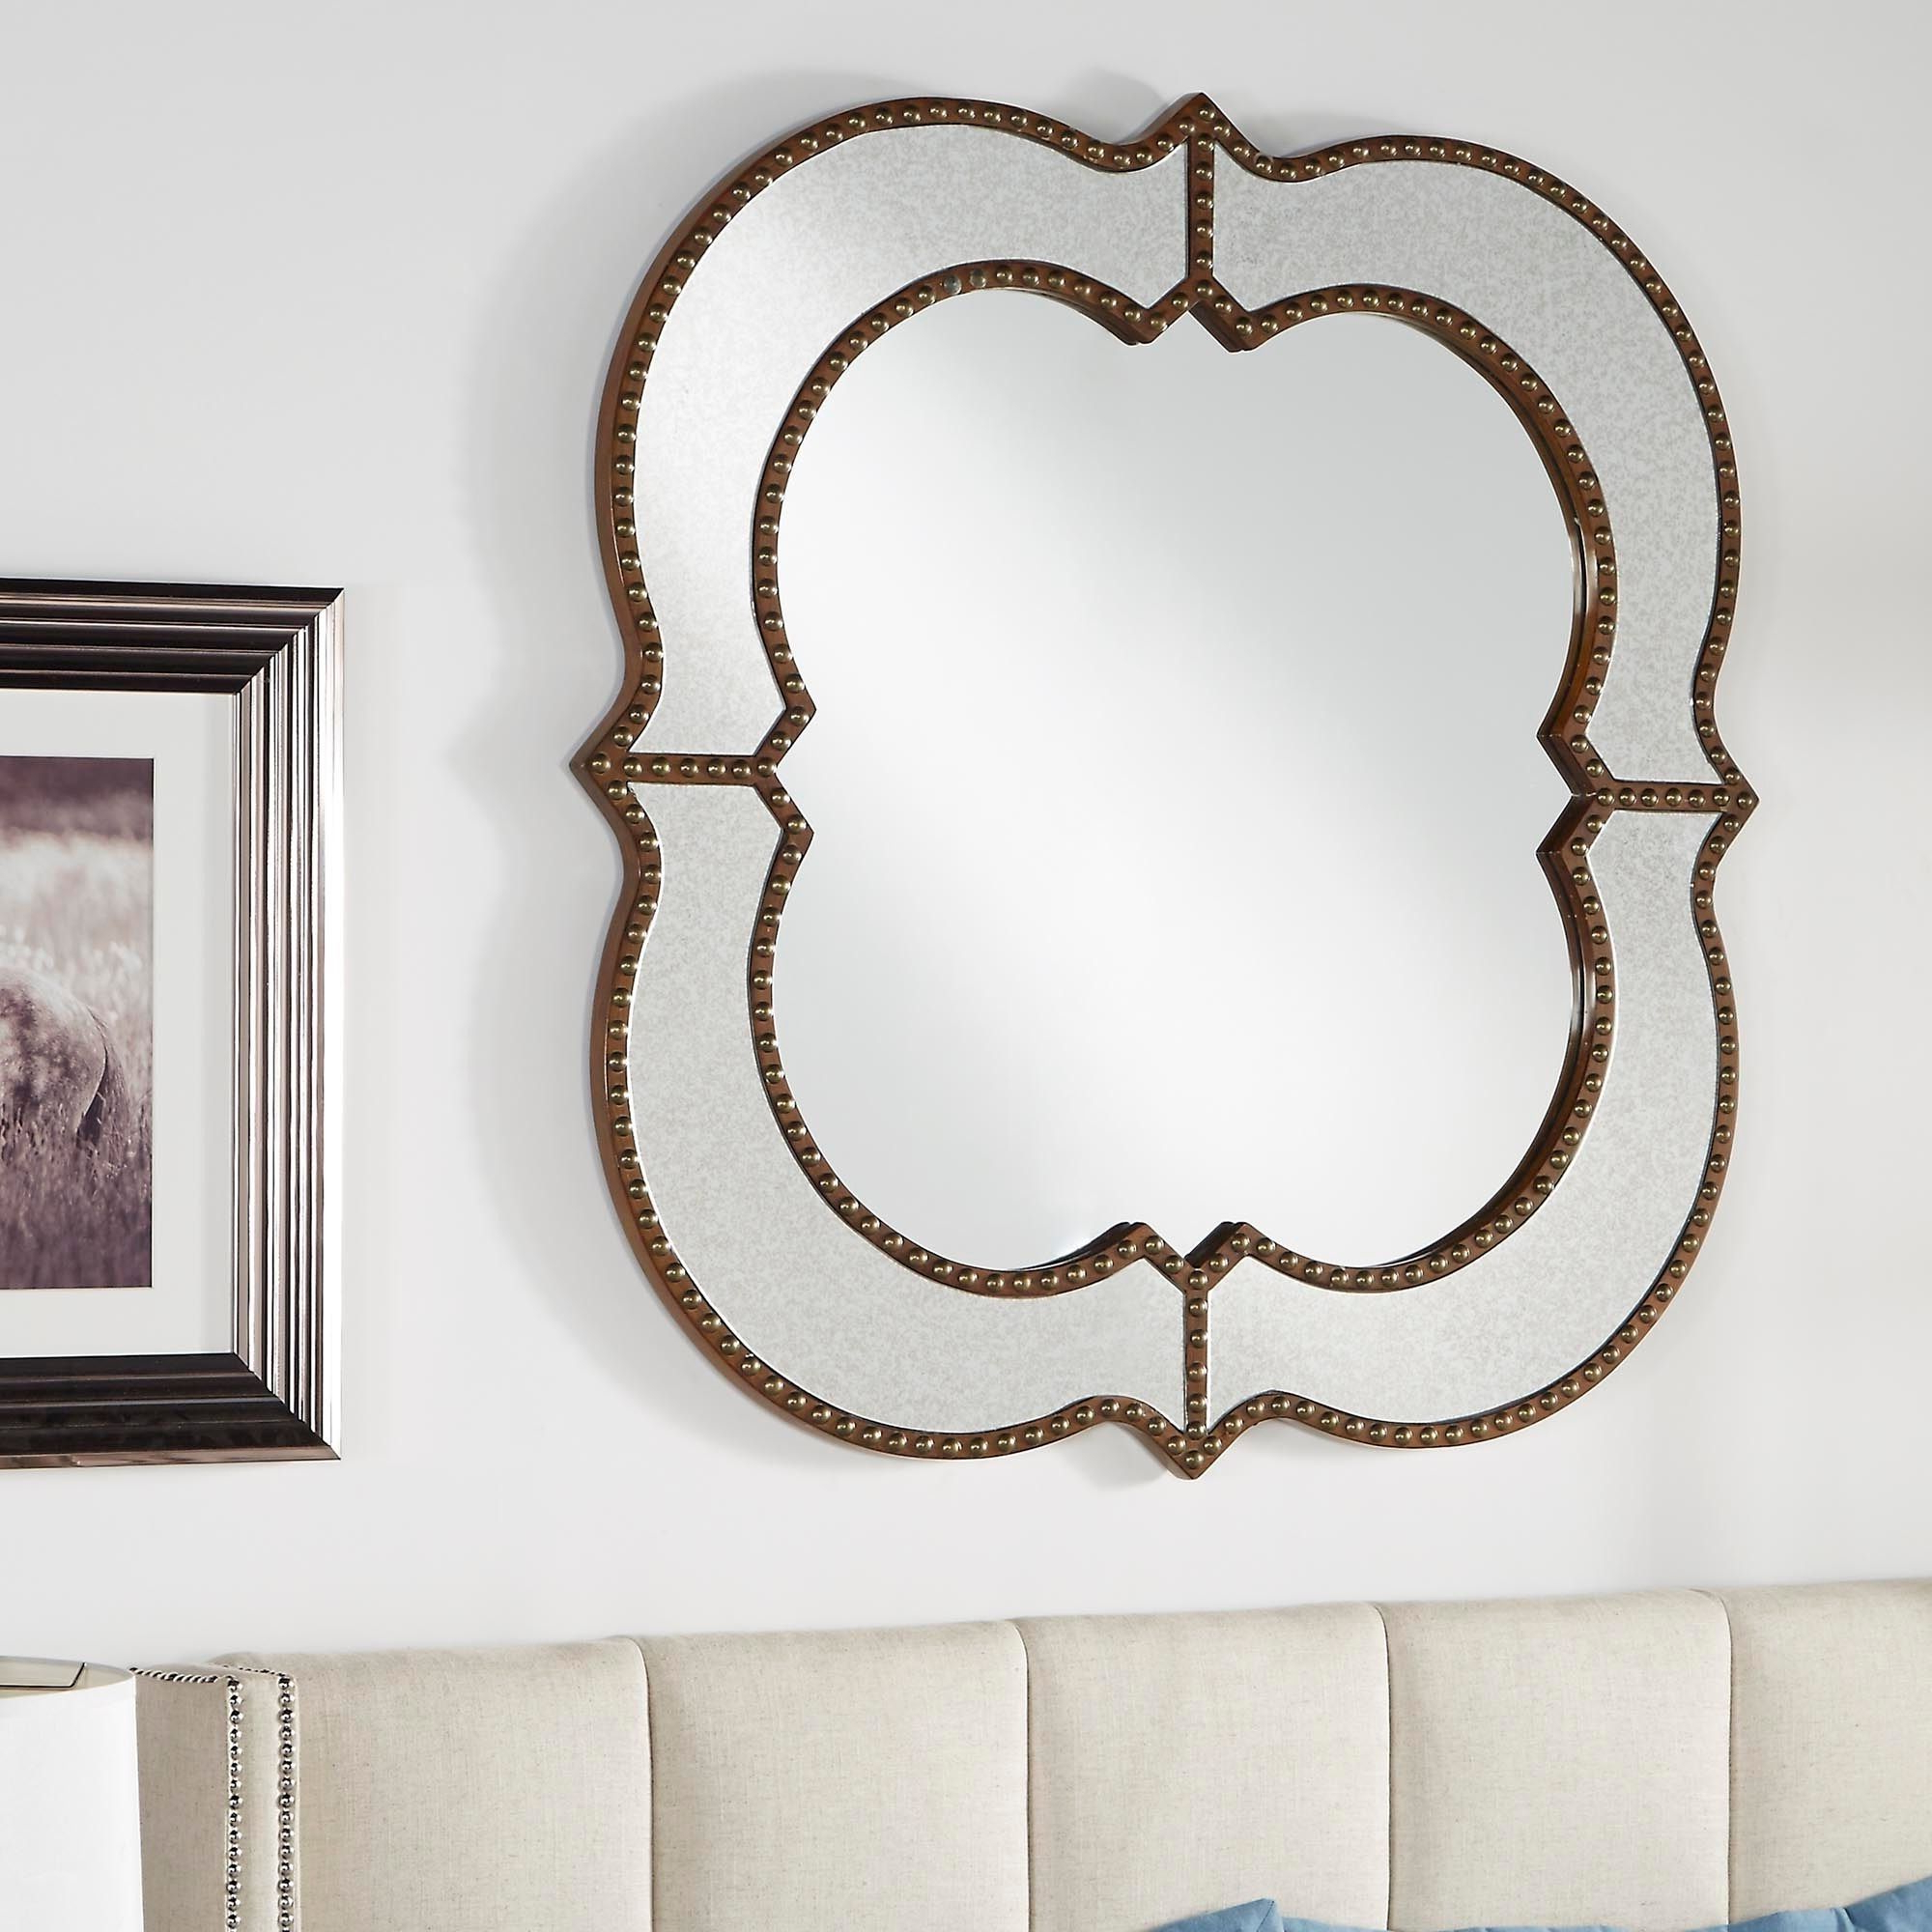 Elevate Wall Mirrors Within 2020 Decorate Your Home With This Antique Style Wall Mirror (View 15 of 20)